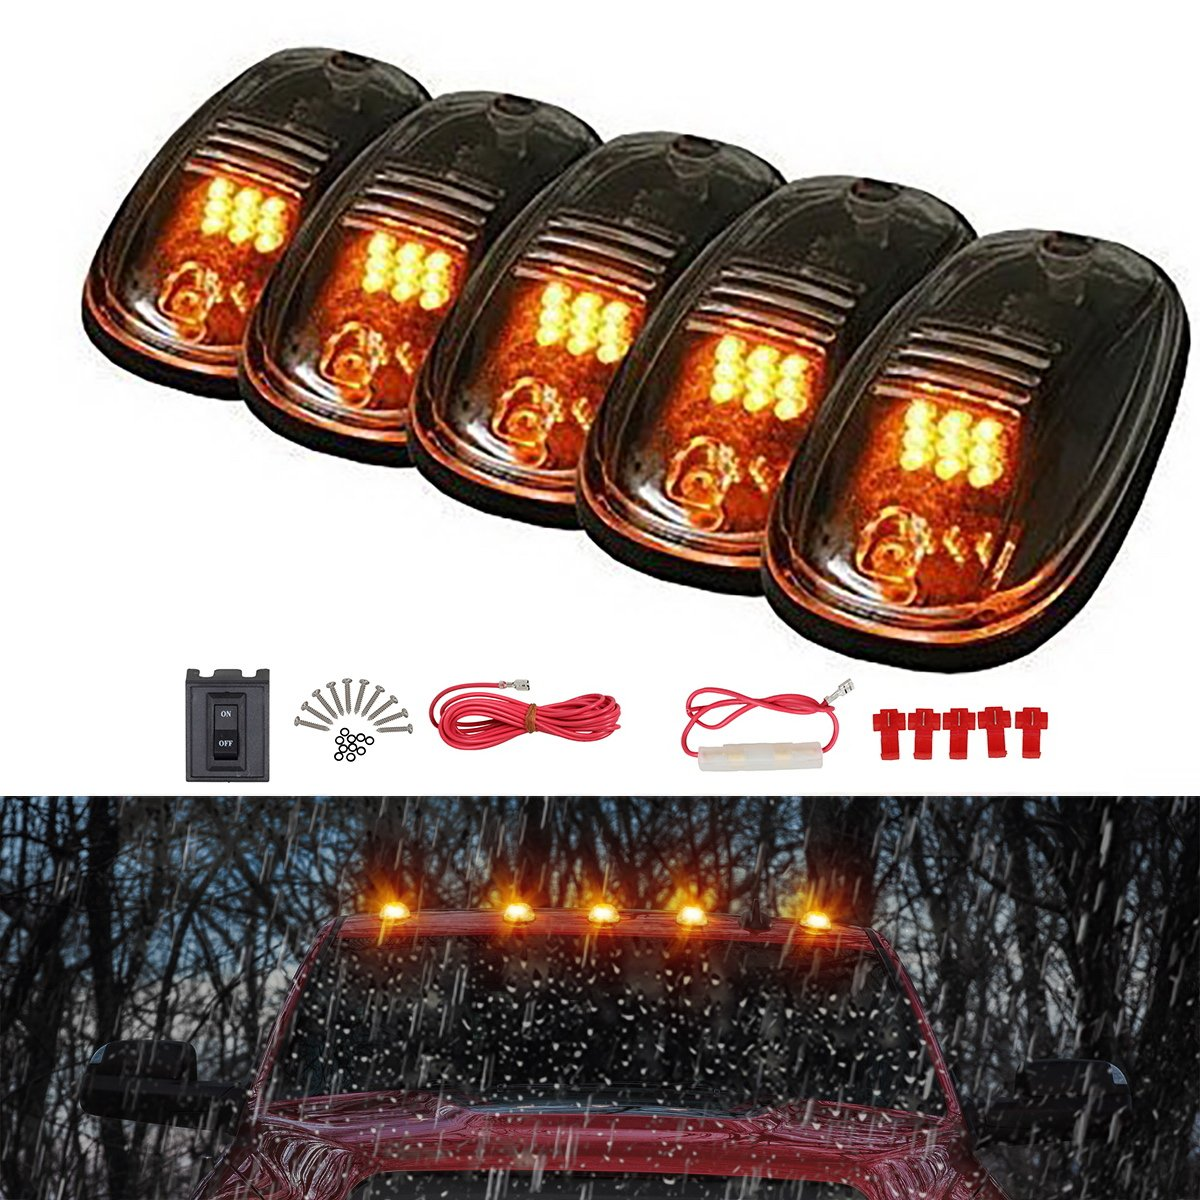 Partsam 5 x 264146BK Cab Roof Running Clearance Marker Lights Smoke Cover W Build-in Amber LED Replacement For 2003-2018 Dodge Ram 1500 2500 3500 4500 5500 Pickup Trucks With Stock Cab Light